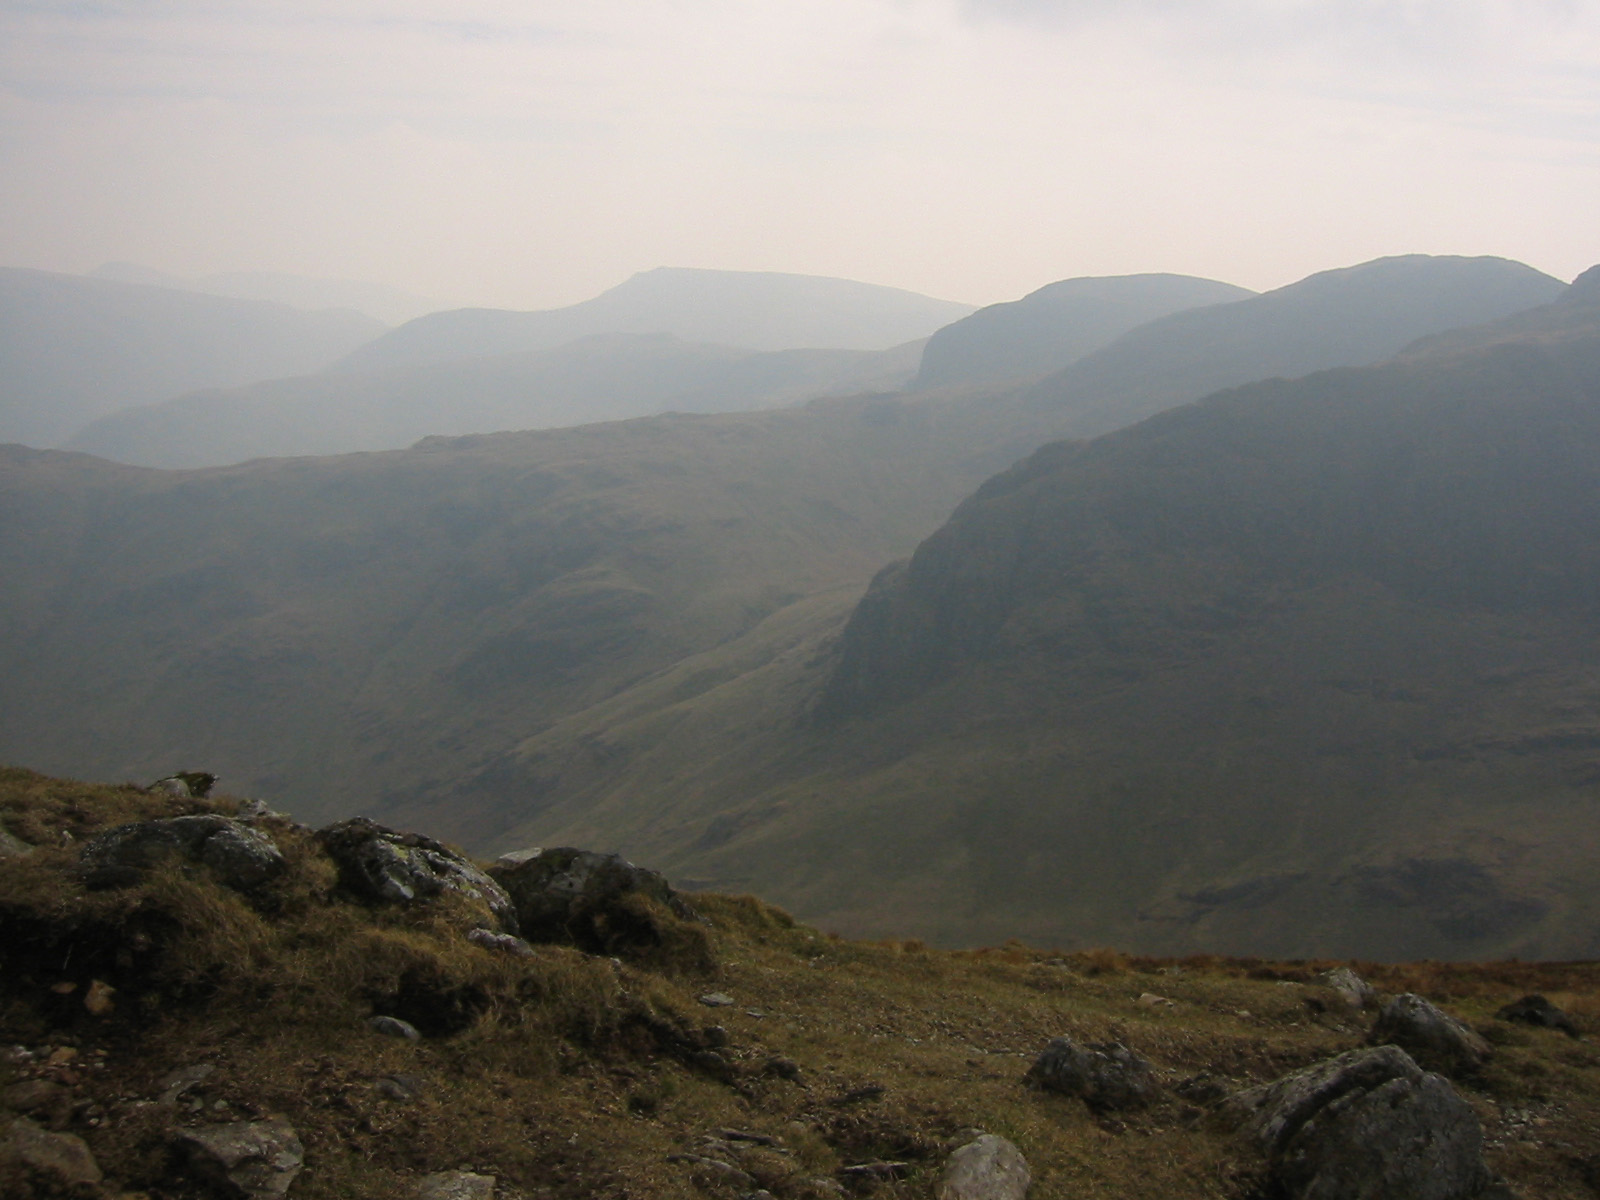 Greenhow End, Hart Crag and Dove Crag from St Sunday Crag. In the distance is Red Screes